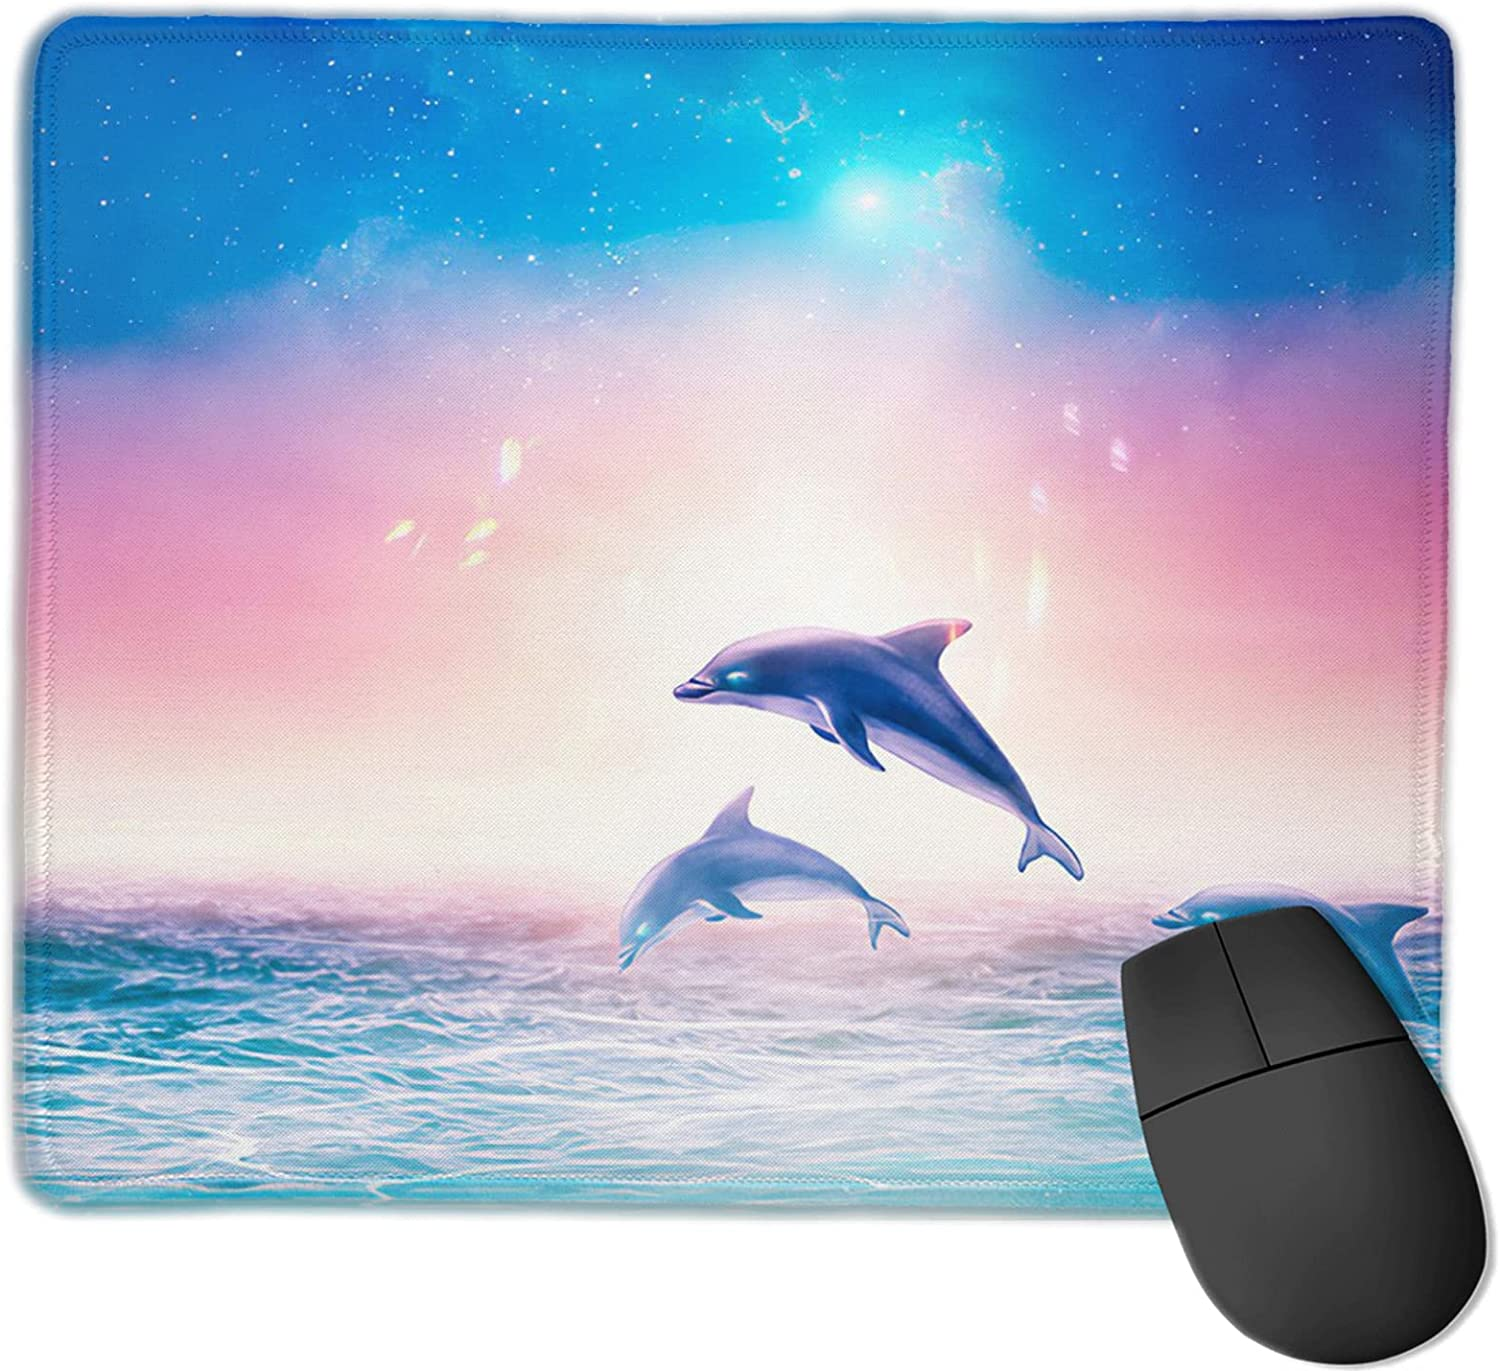 In a popularity Cute Cheap mail order shopping Dolphin Mouse Pad9.8x11.9 in Gaming Pad Extended Stit